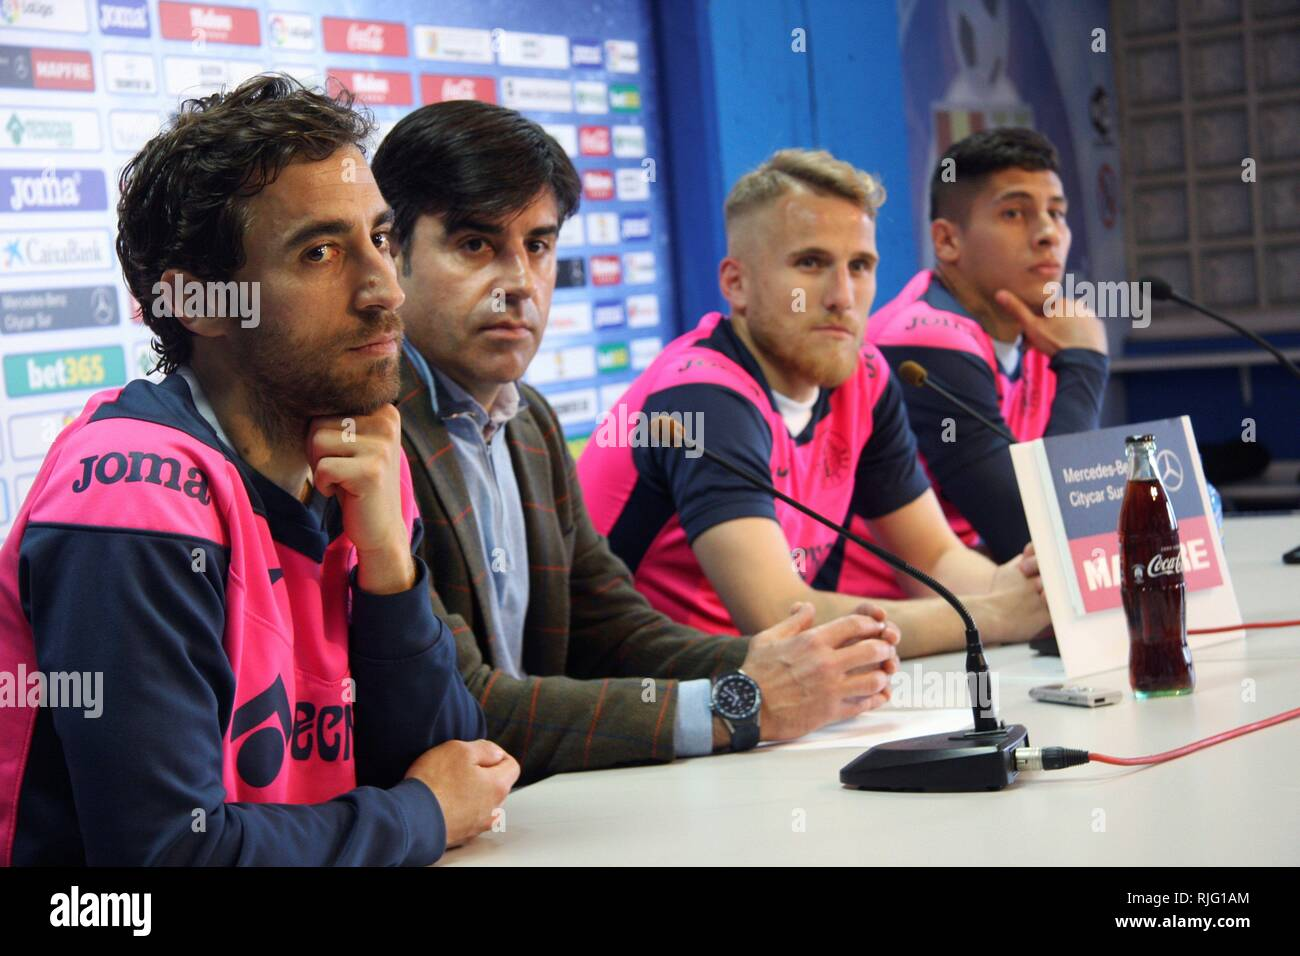 Getafe's French midfielder Mathier Flamini (L), winger Samu Saiz (2-R) and Uruguayan defender Mathias Olivera (R) attend a presentation during their presentation in Getafe, Spain, 06 February 2019. EFE/ Carlos Mateos - Stock Image